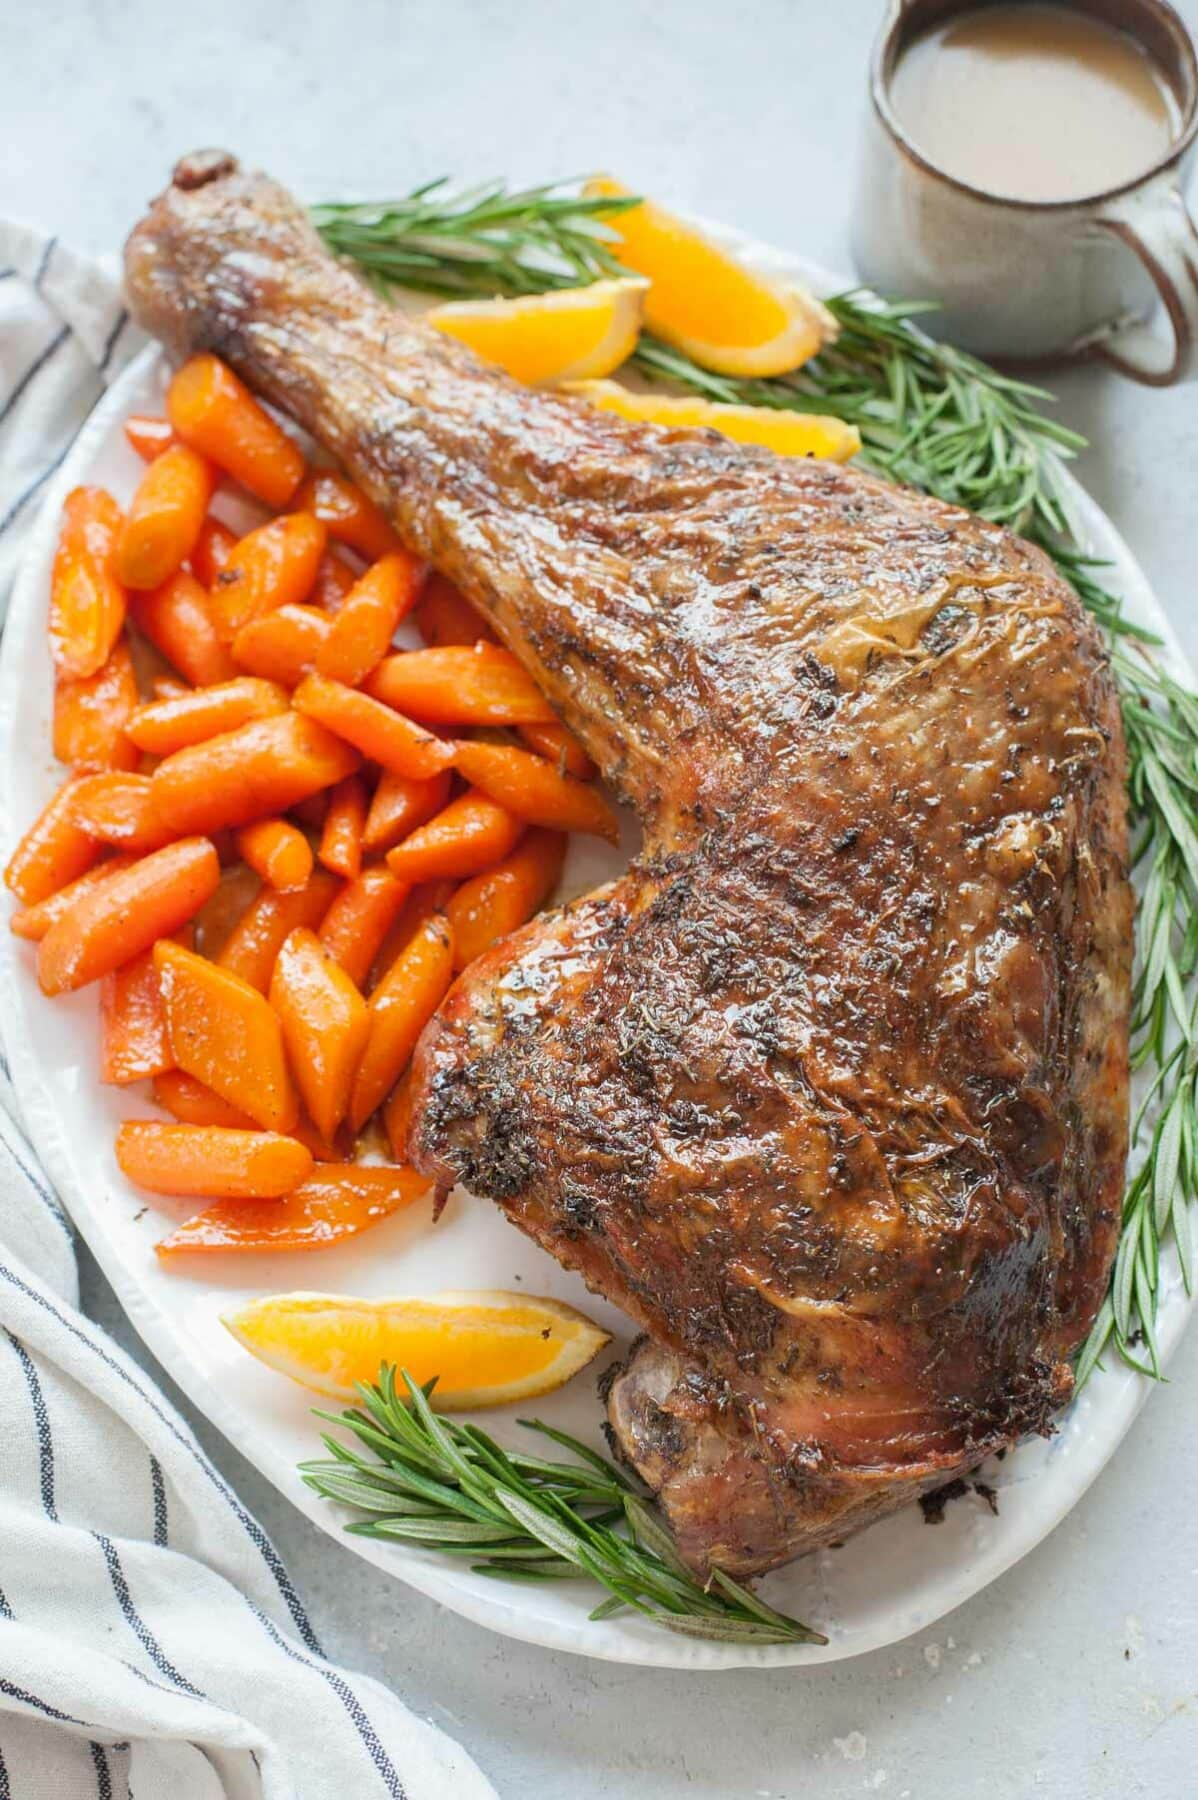 Whole baked turkey leg on a white plate with glazed carrots, rosemary springs and orange wedges.